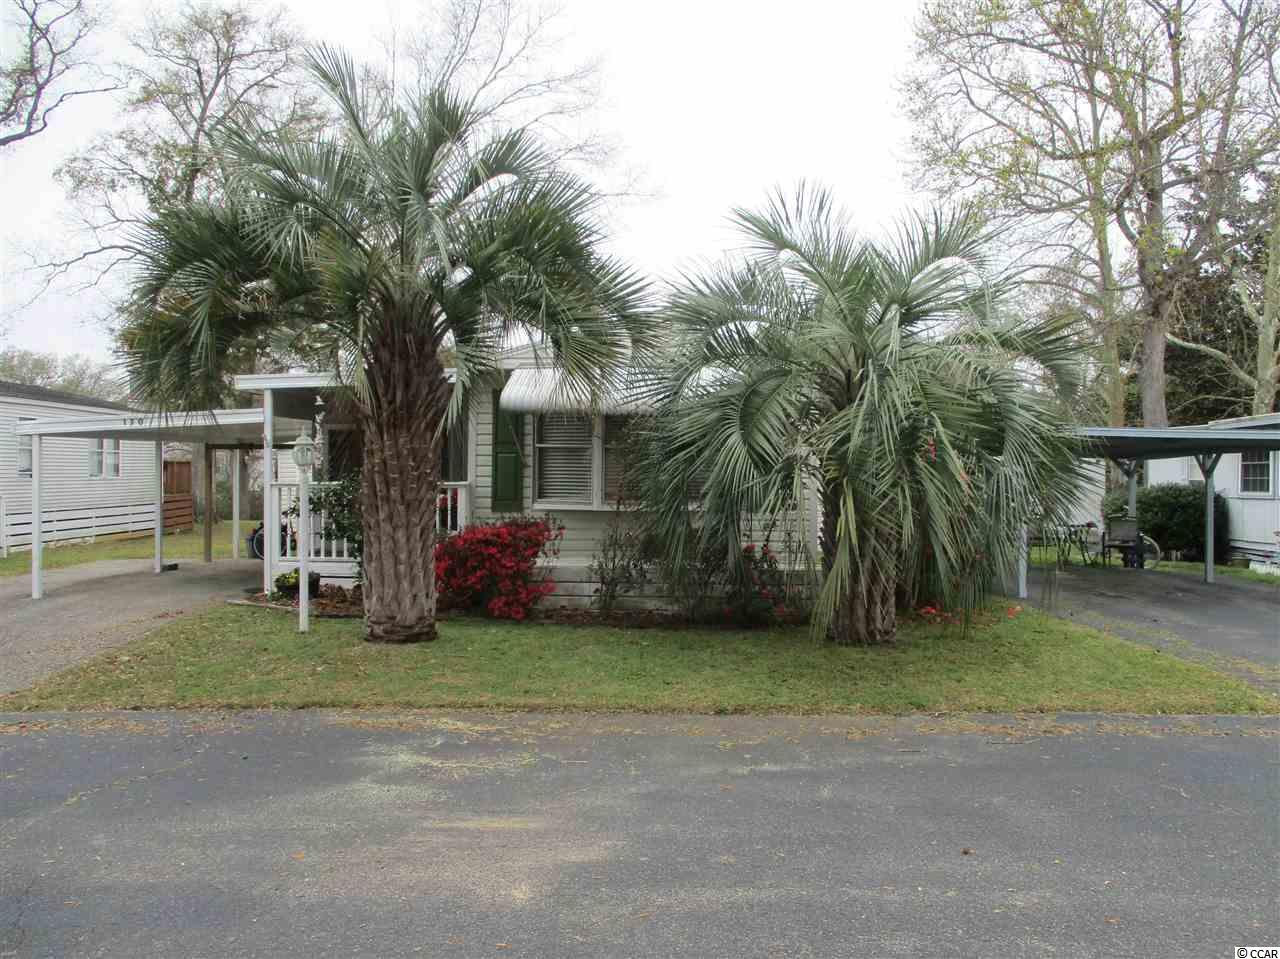 2BR 2BA lakefront home in Inlet Oaks Village, a 55 and older retirement community in Murrells Inlet, SC, approx. 12 miles south of Myrtle Beach. Community has a clubhouse & pool for residents and their guests, plus lots of activities for residents who wish to participate. Community also has 3 lakes for fishing or just enjoying the birds and wildlife, plus a secure storage area for residents to keep boats, trailers, etc. Inlet Oaks Village is near Murrells Inlet's famous waterfront restaurants, close to shopping, entertainment, great golfing, a modern hospital & doctors, and only minutes away from Huntington  Beach (ocean front) State Park. Also minutes away from Brookgreen Gardens. This is a spacious home with lots of upgrades. It has a sun room in back that overlooks the lake at your back yard, an 8x20 addition to the living room, a large walk in closet and storage room addition, remodeled kitchen, walk-in shower in master bath, a new rubber roof in 2015, a car port, and a covered front entry porch. New a/c &heating system in 2014. Also has a large site built storage building. This is a solid home in a great location, it won't last long call today for an appointment to see.